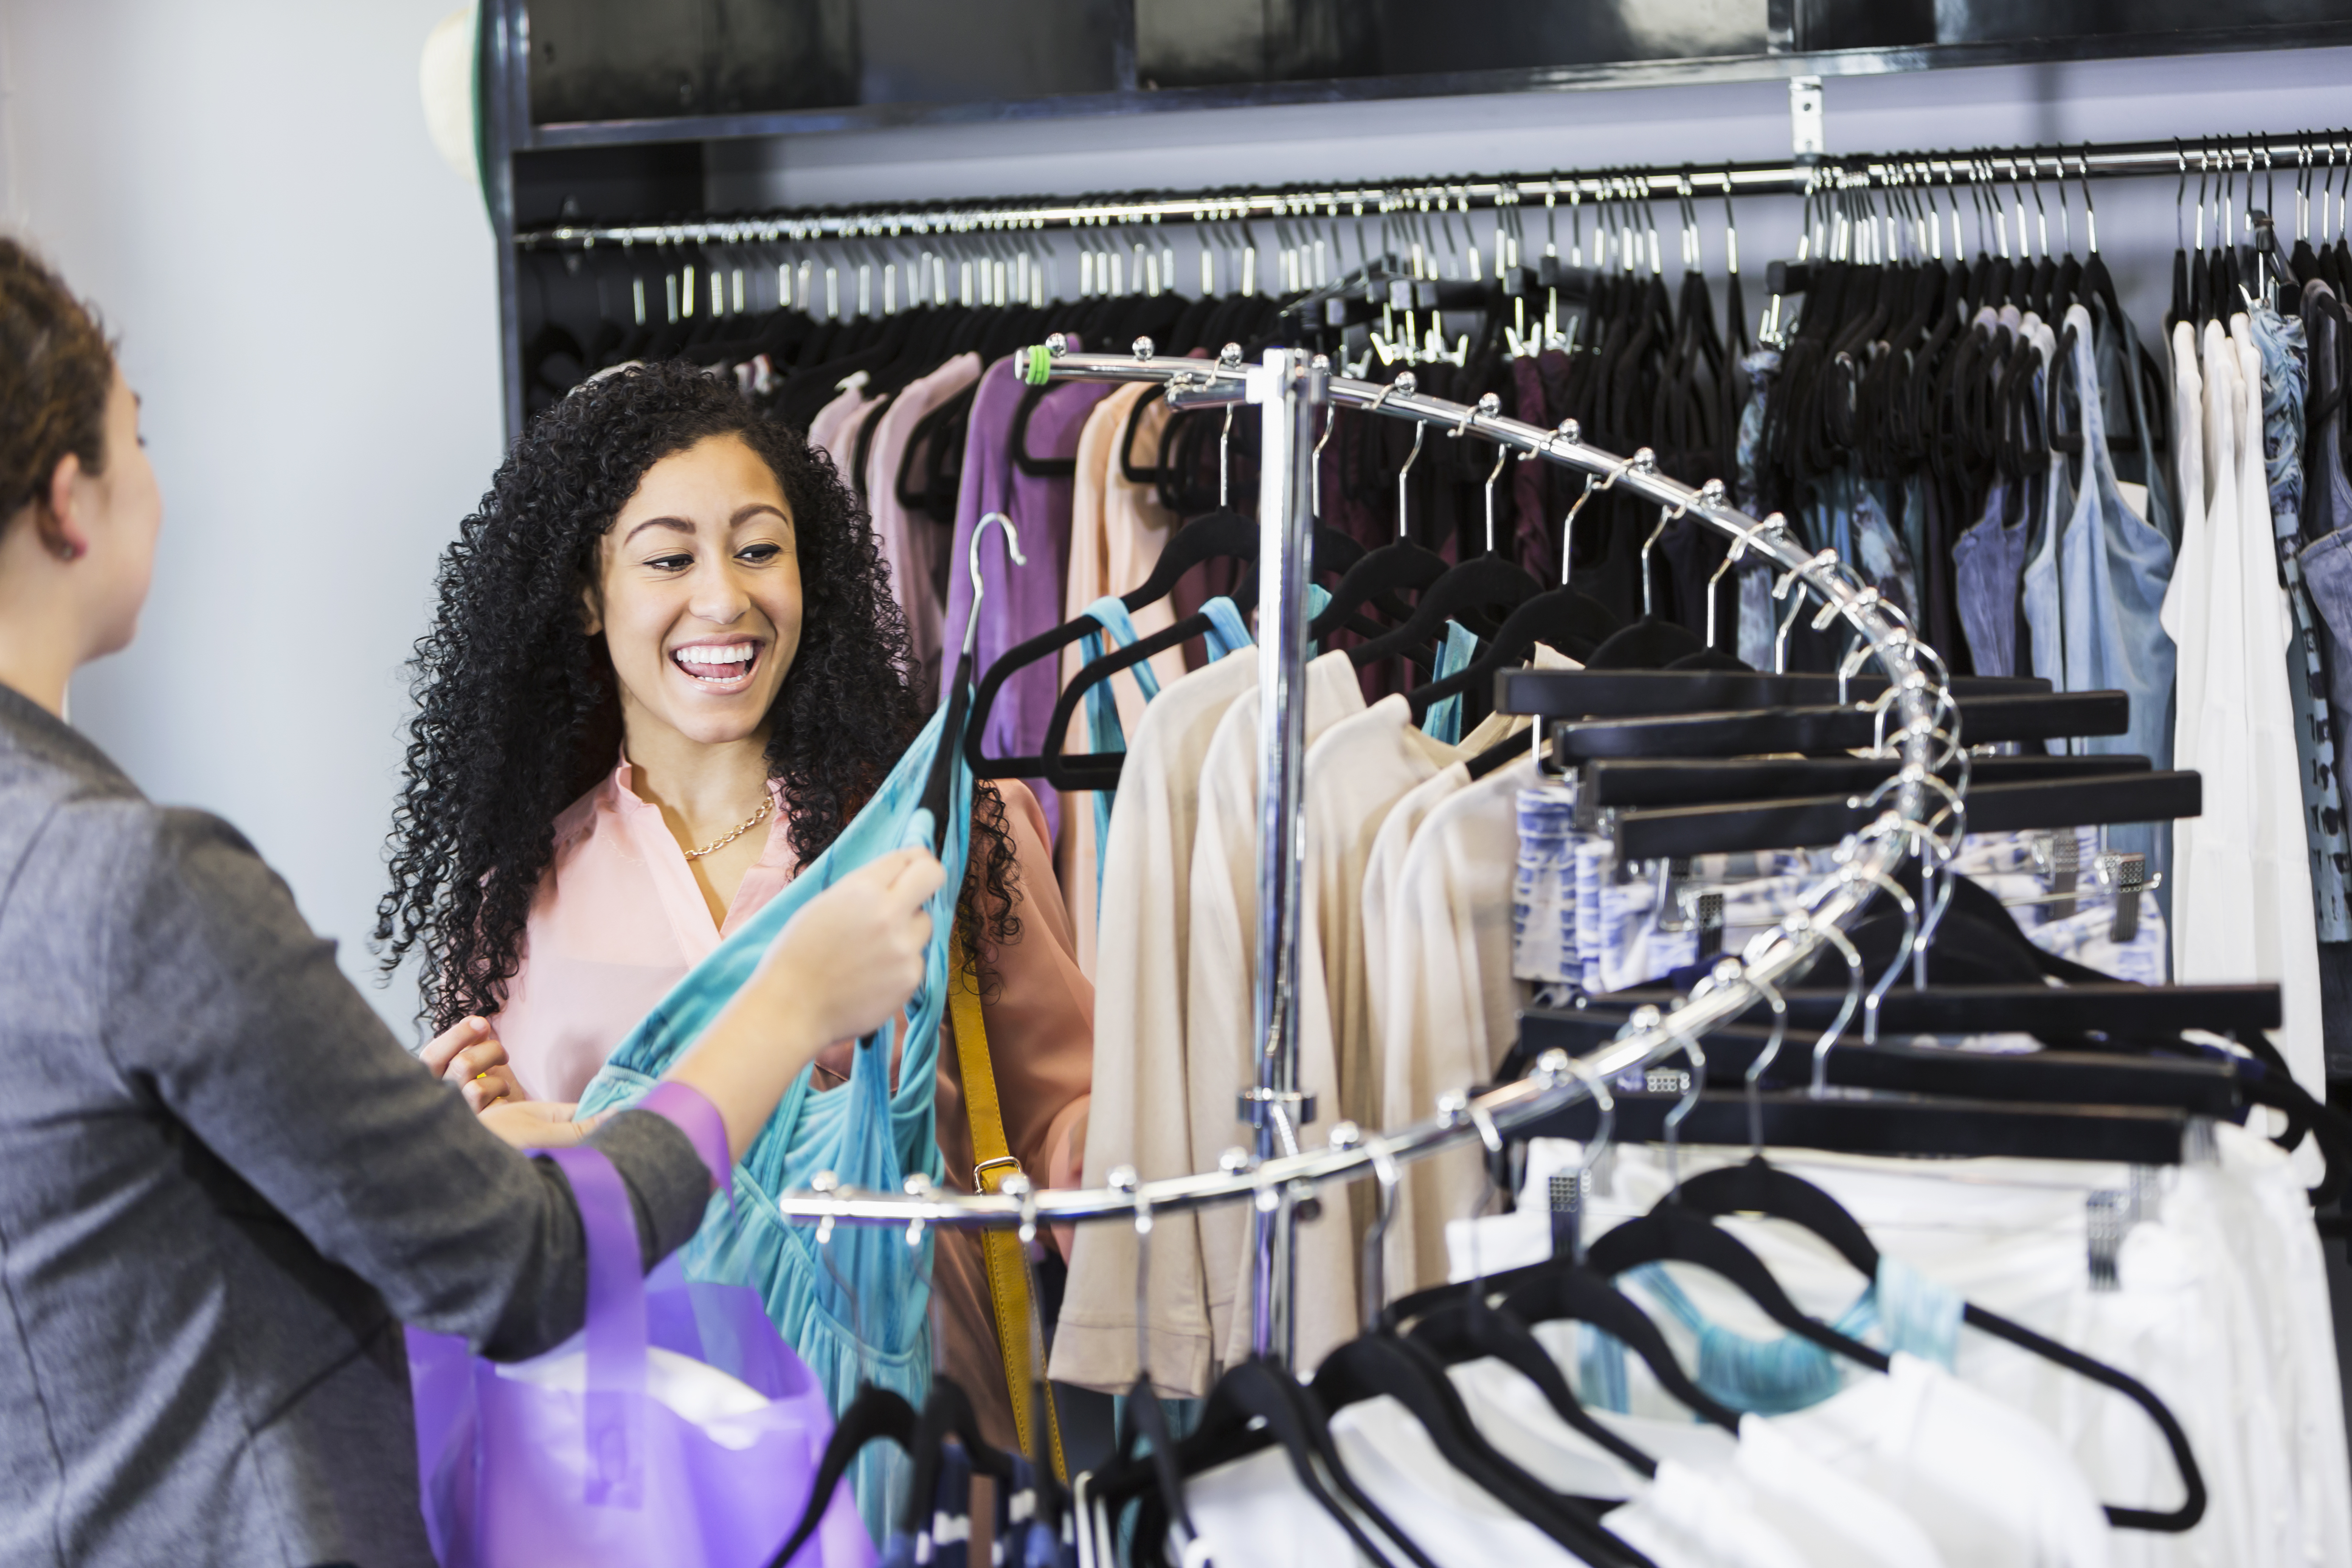 Women shopping for clothes in clothing store